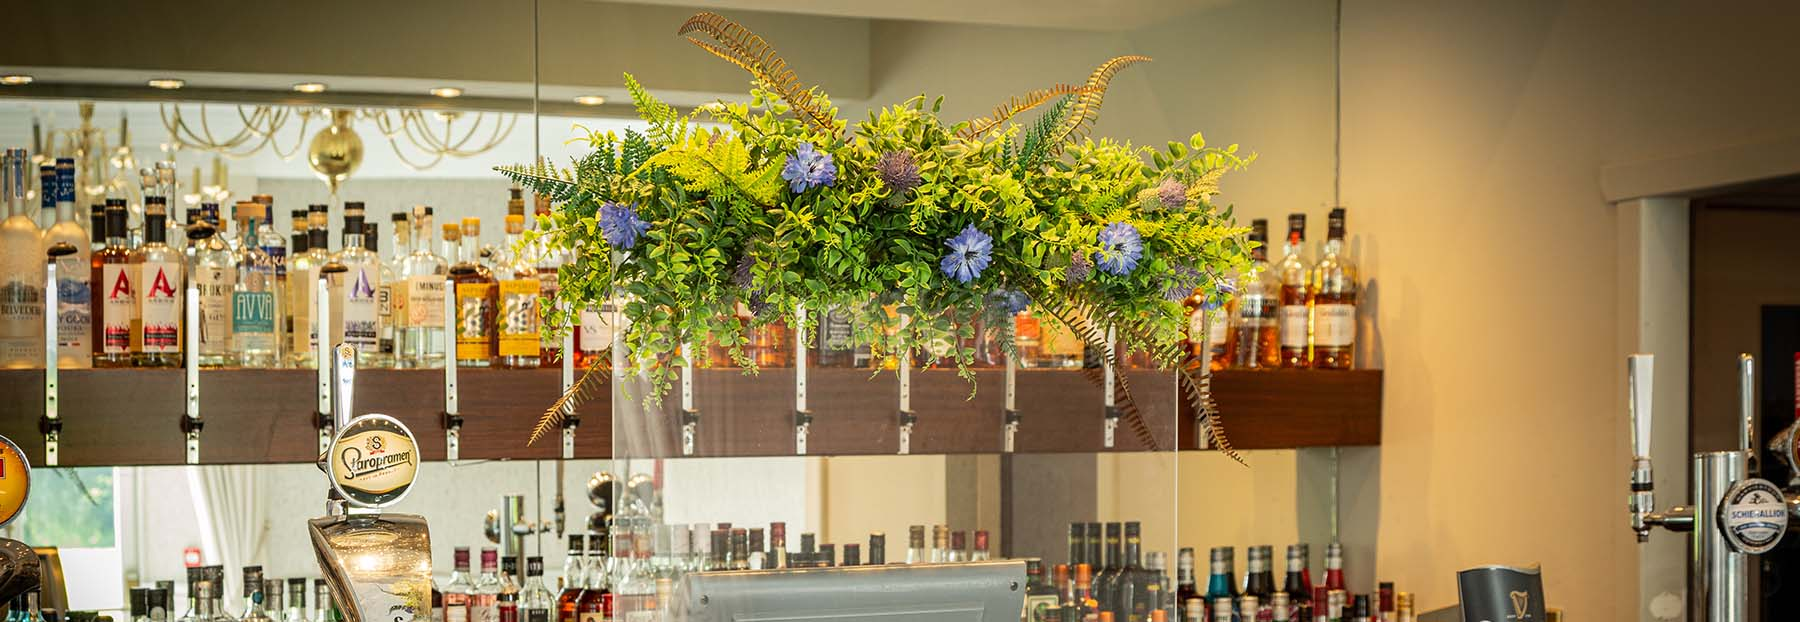 Hotel Bar with a PPE screen in front of the till topped with floral display of artificial foliage, flowers, and thistles